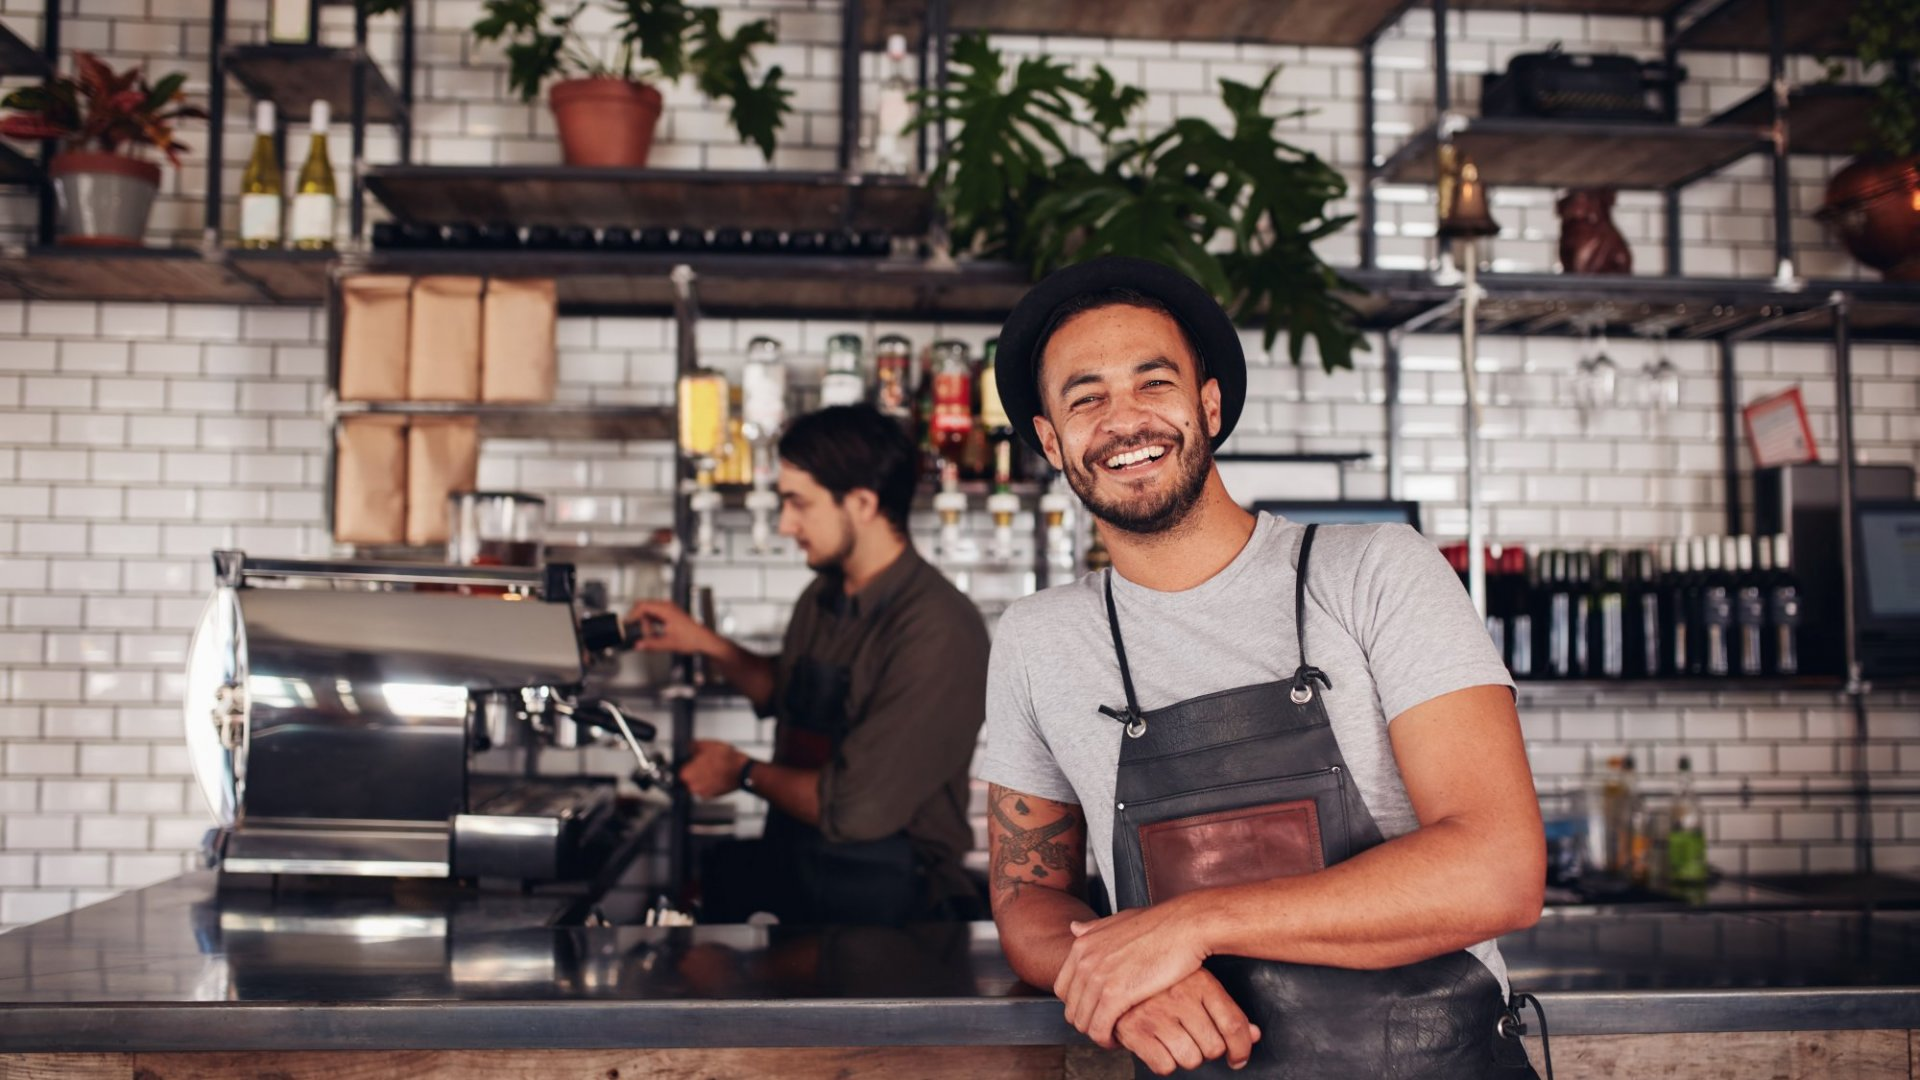 8 Ways You Can Build Customer Loyalty This Small Business Saturday